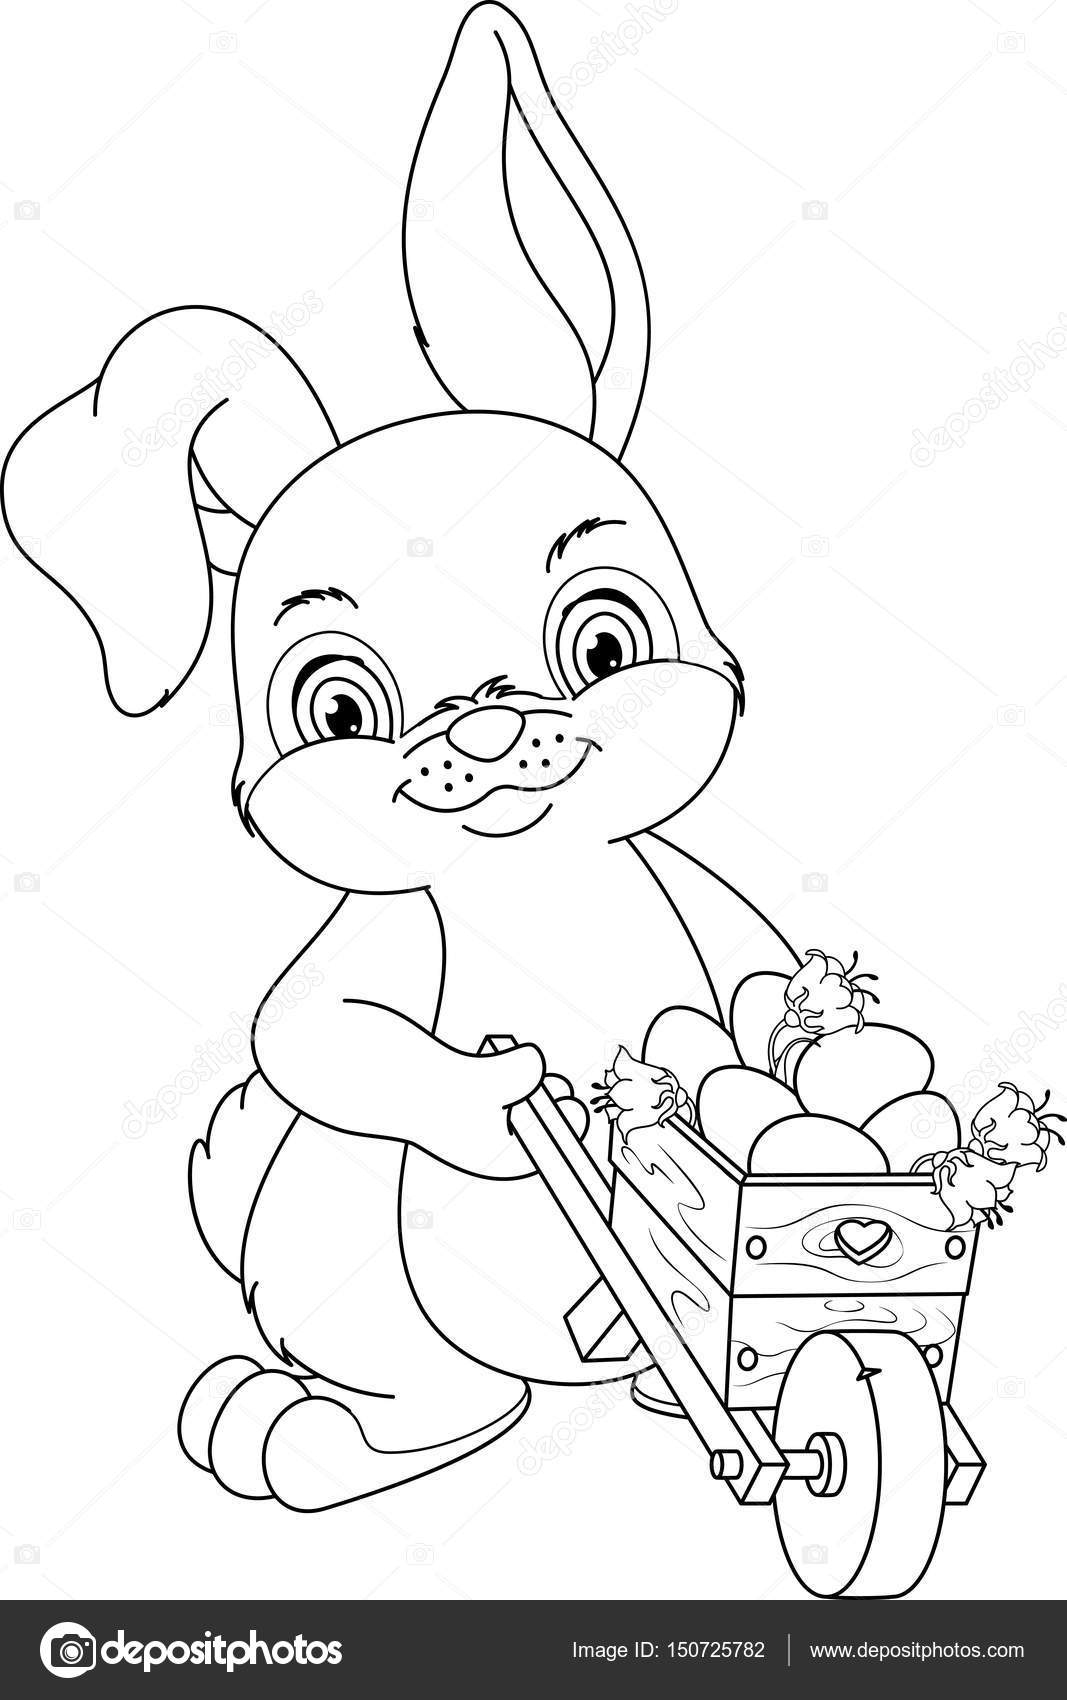 Easter Bunny Coloring Page — Stock Vector © Malyaka #150725782